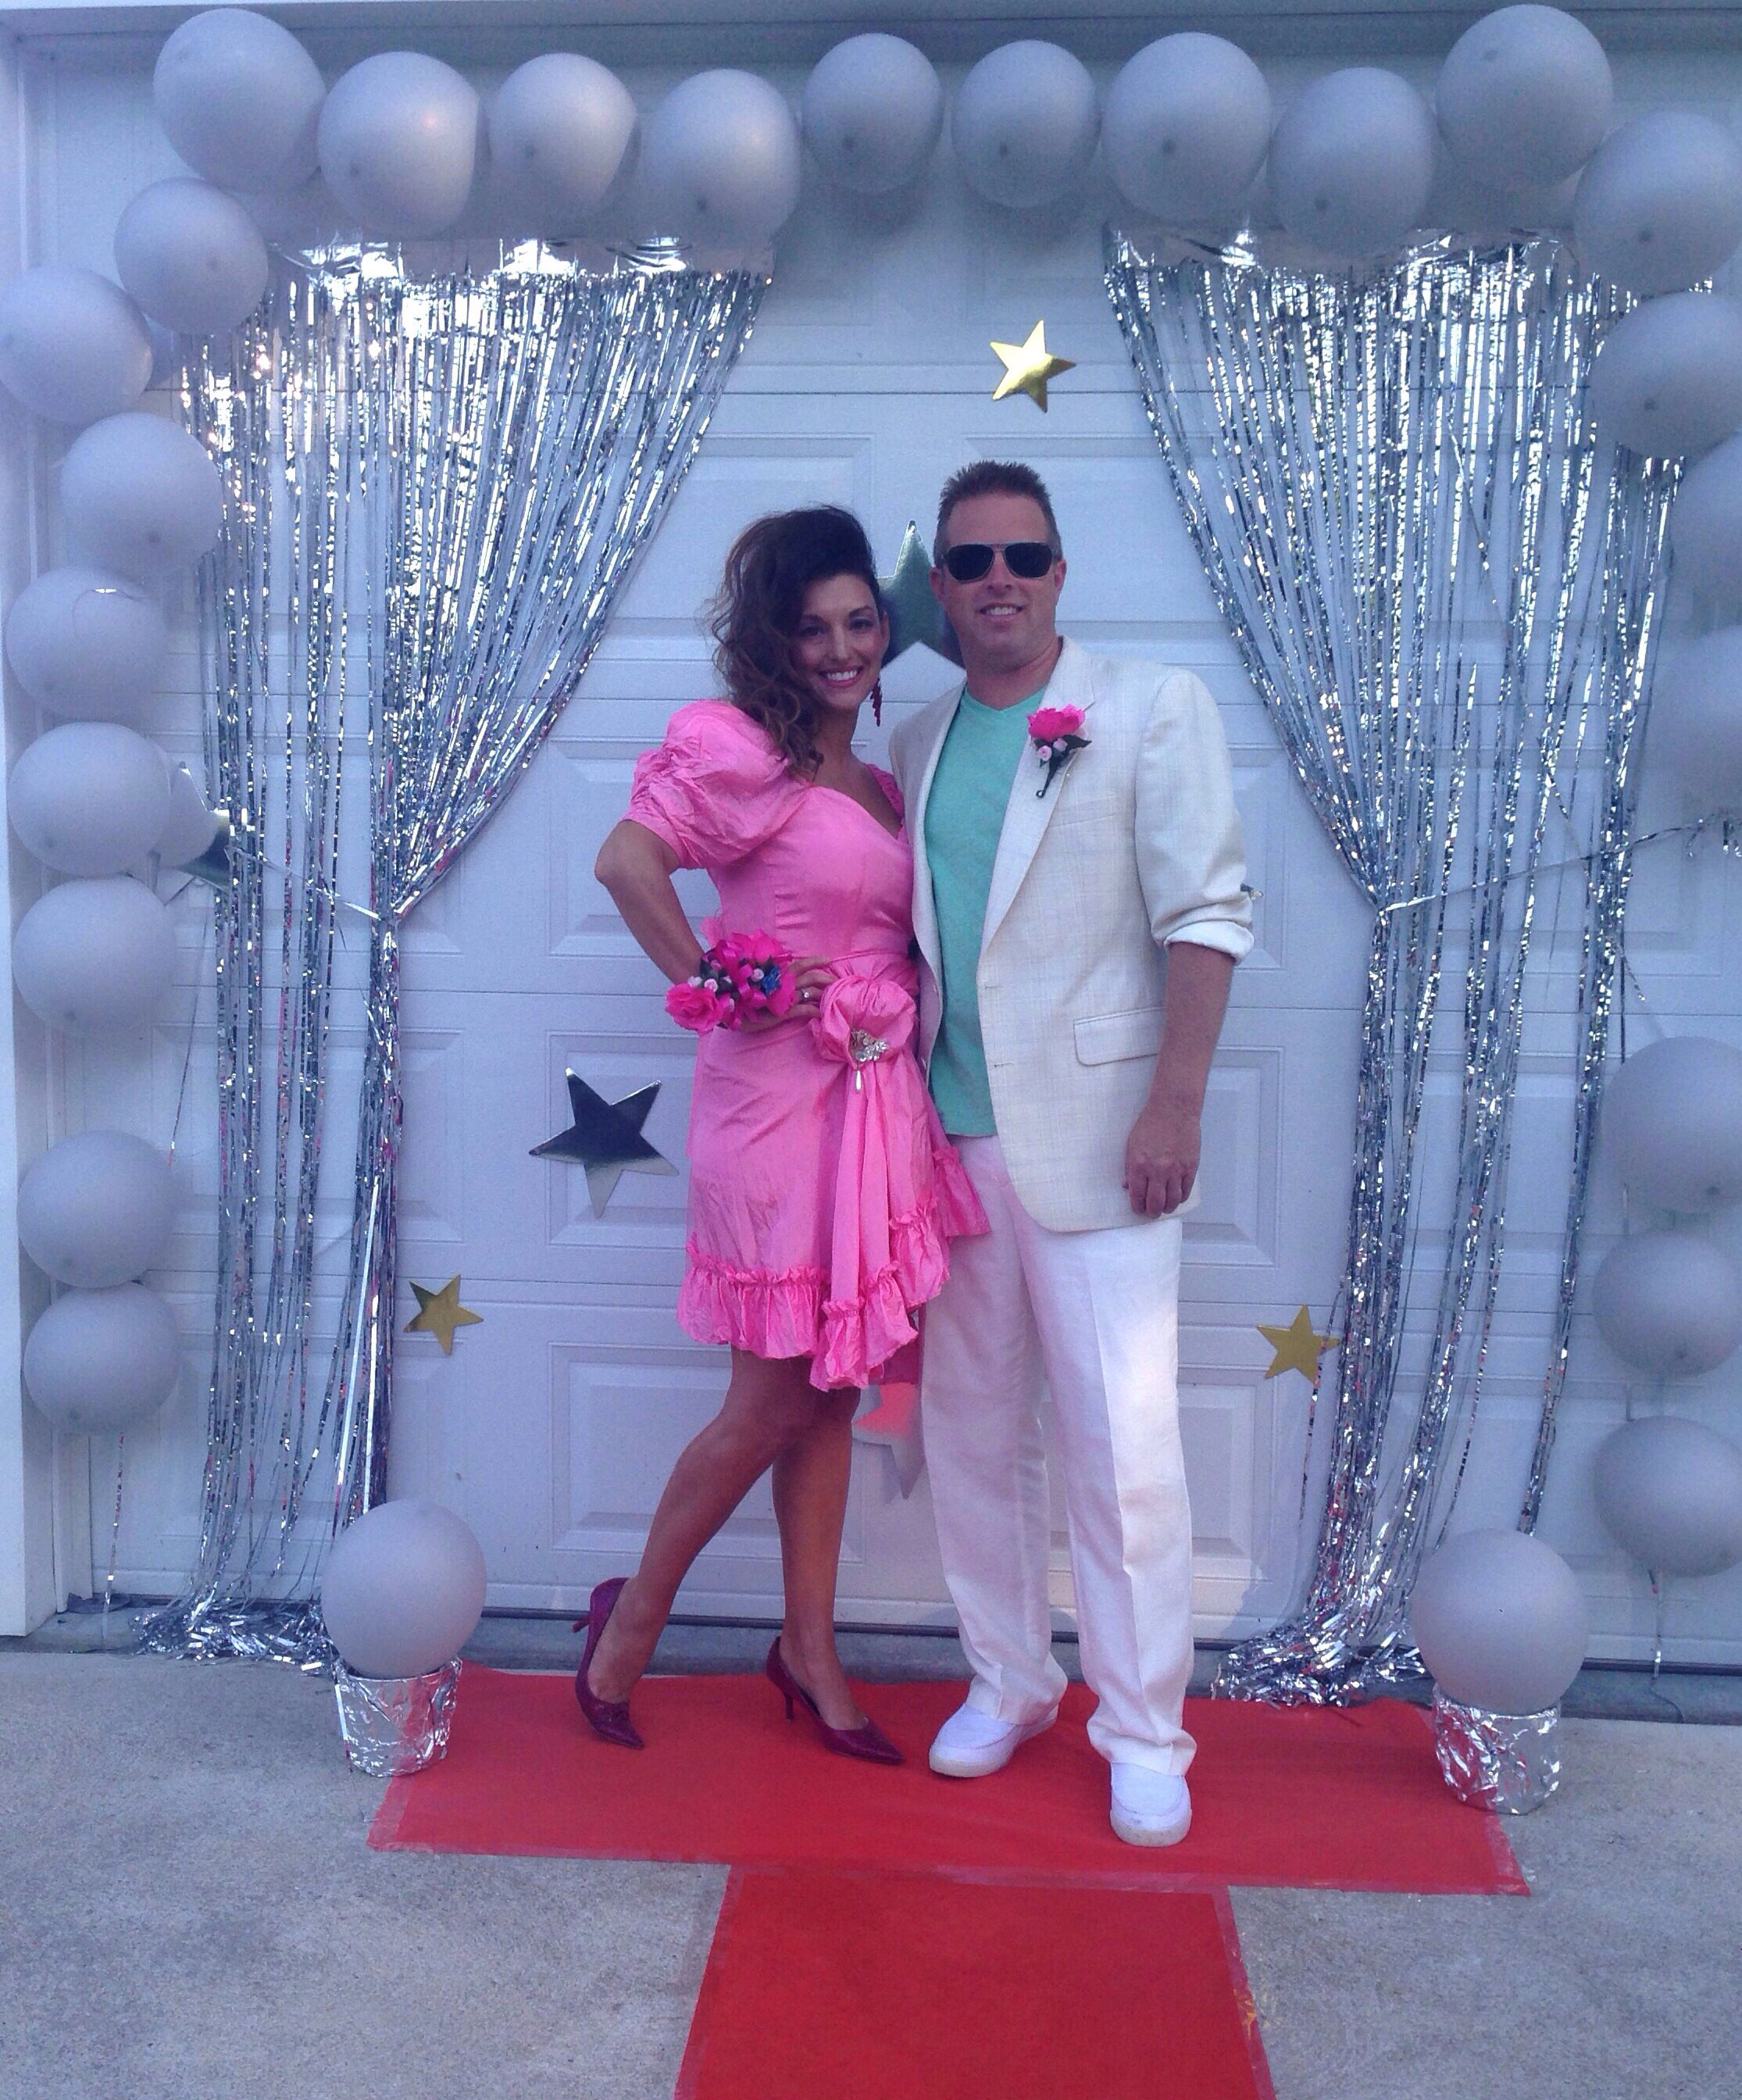 Us prom s pinterest s prom prom and prom themes